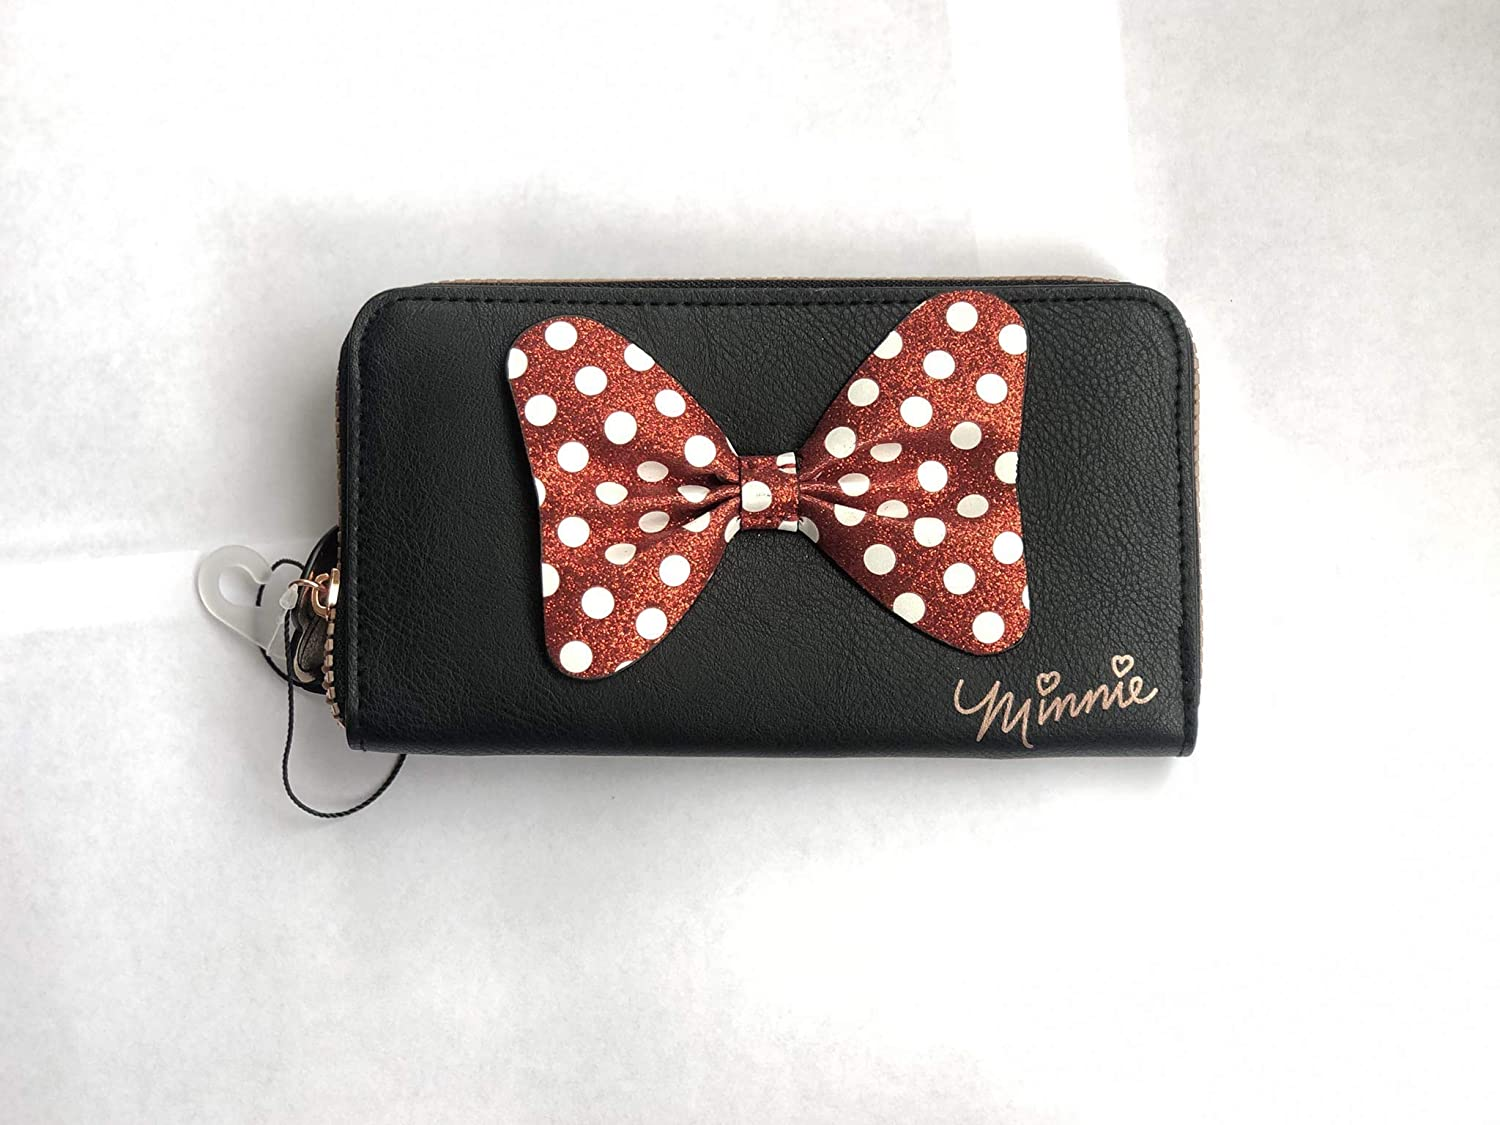 Primark Disney Minnie Mouse ~ Monedero Cremallera ~ Cartera: Amazon.es: Equipaje